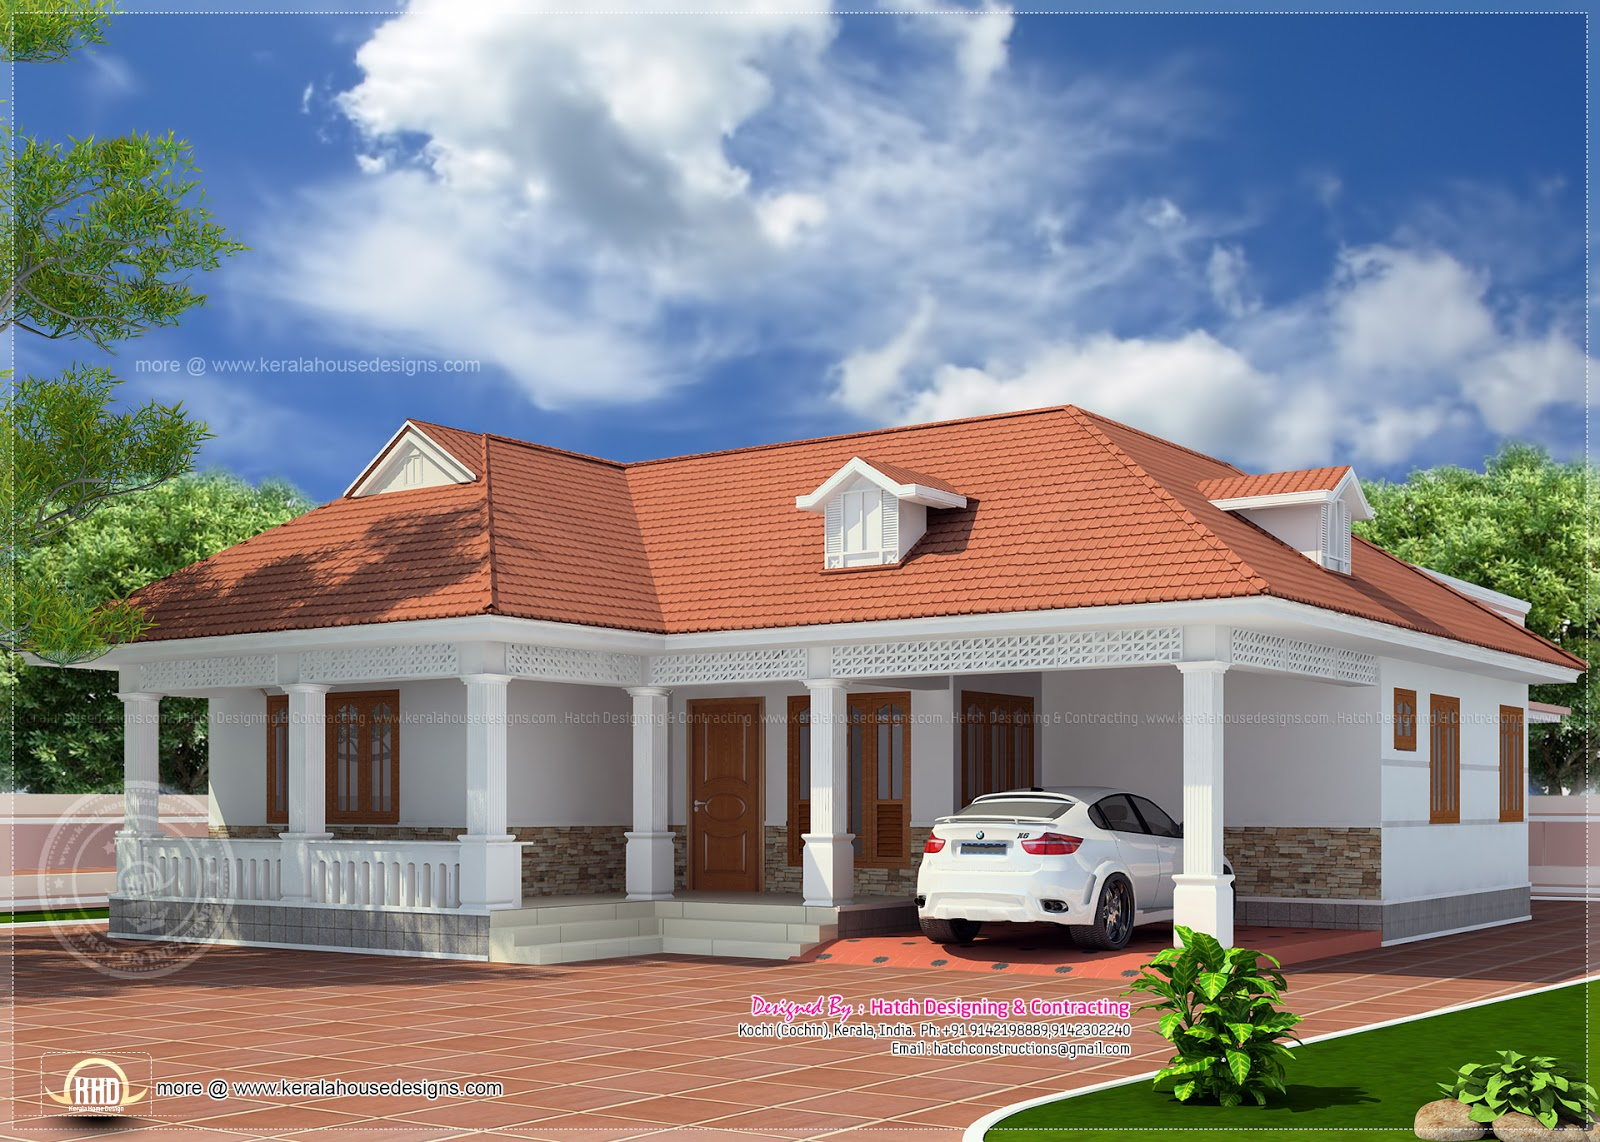 1850 kerala style home elevation kerala home for Kerala single floor house plans